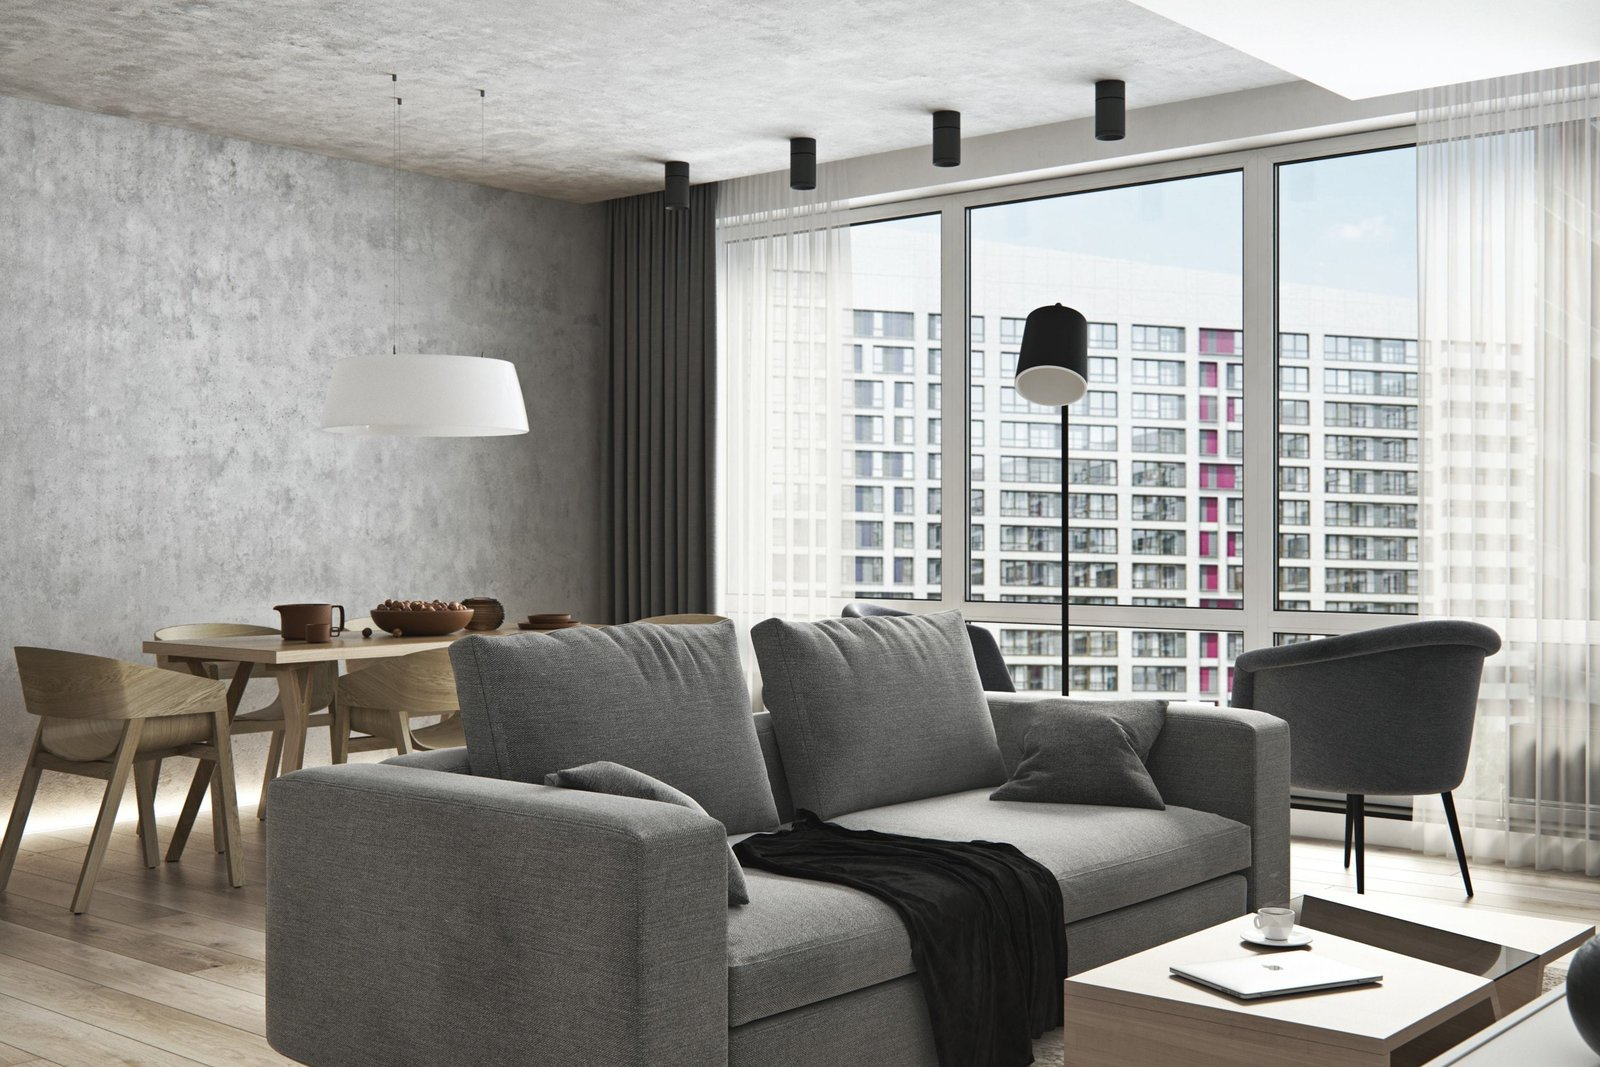 Living Room  Interior Design Project in Contemporary Style by Geometrium